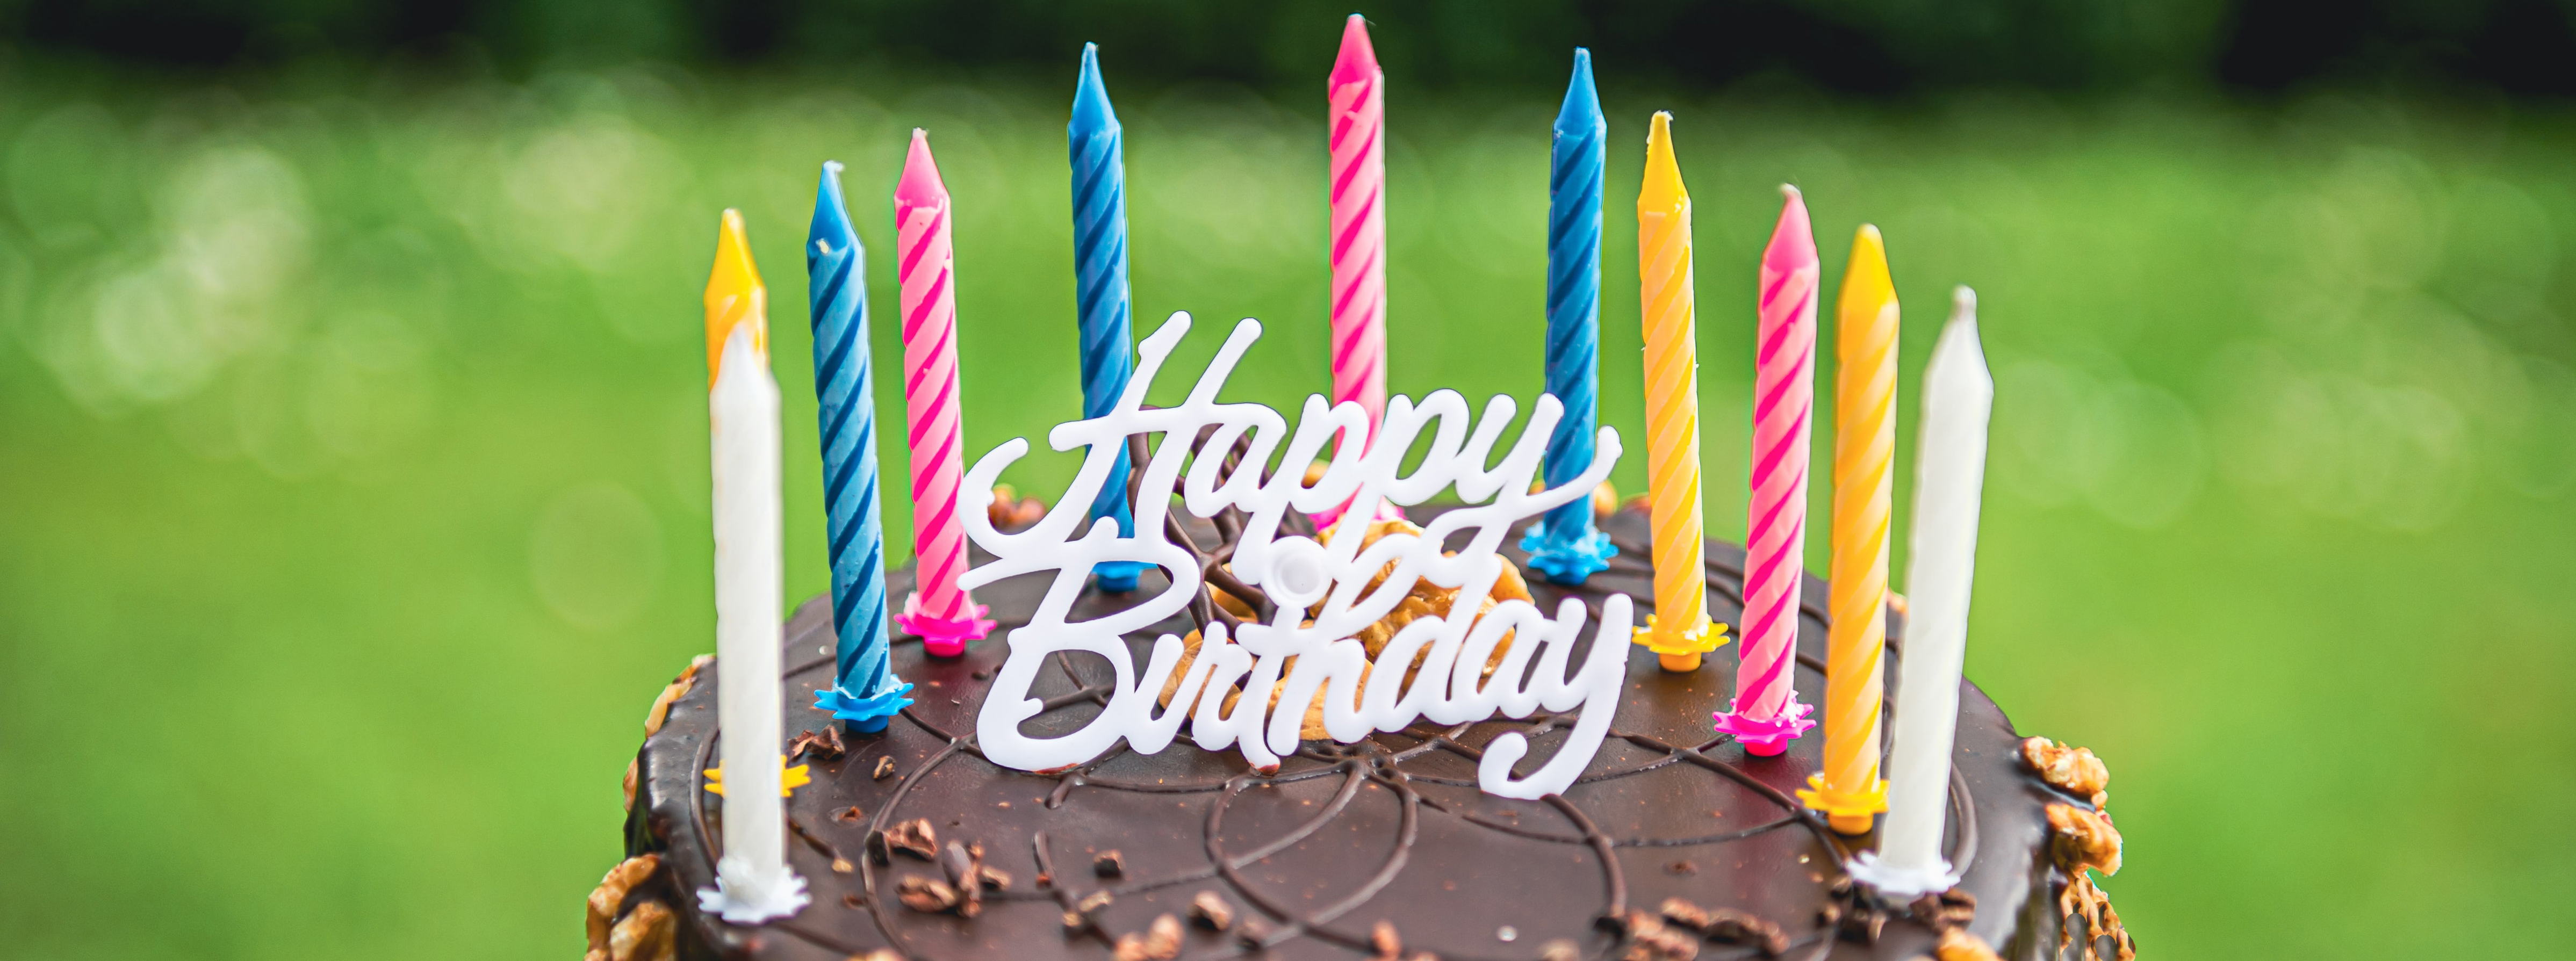 A hand holding a birthday cake with many candles on it, against a green grass background. Photo by Imants Kaziļuns